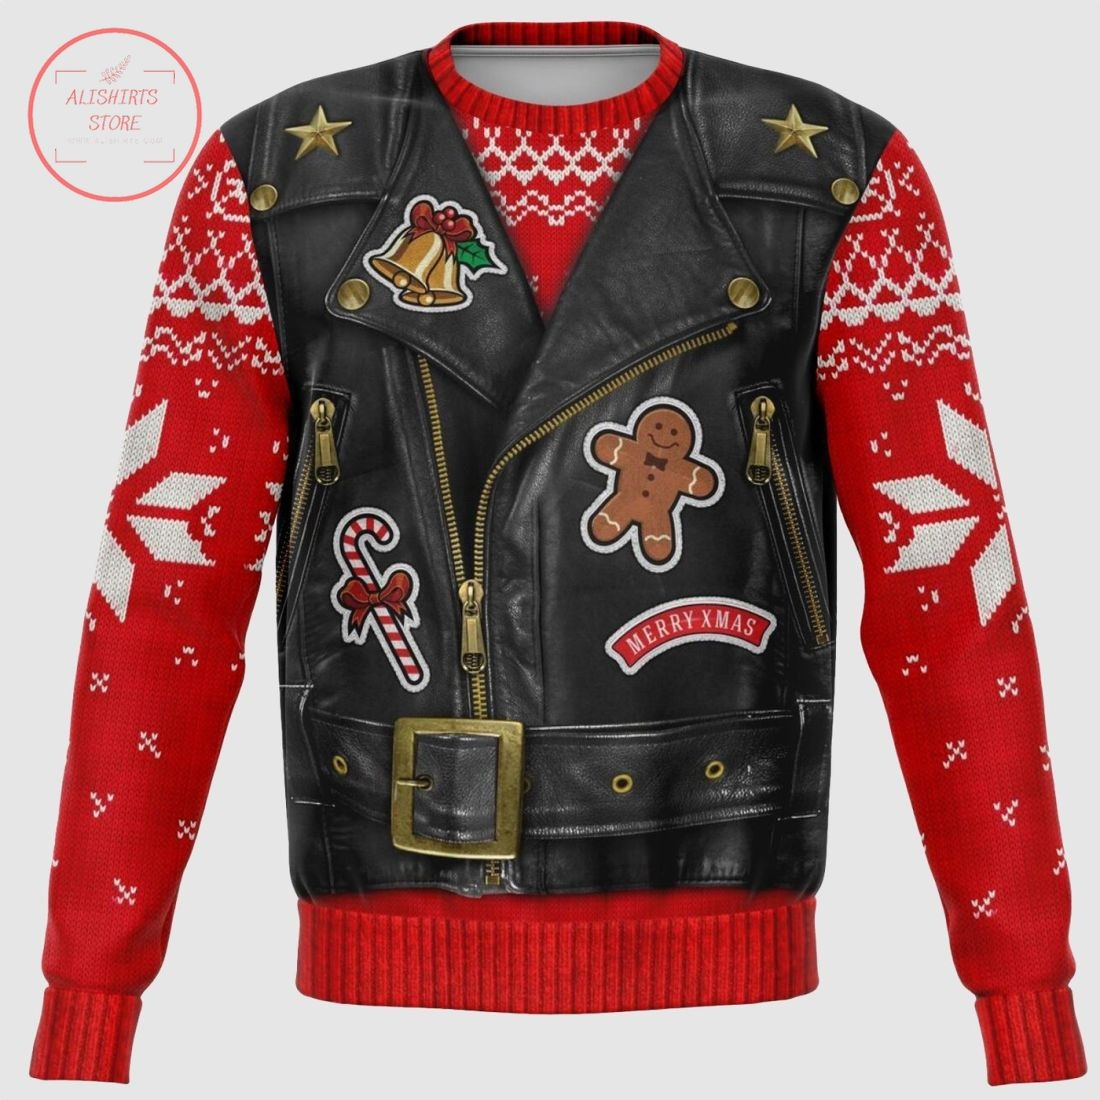 Sons of Santa North Pole Chapter Ugly Christmas Sweater